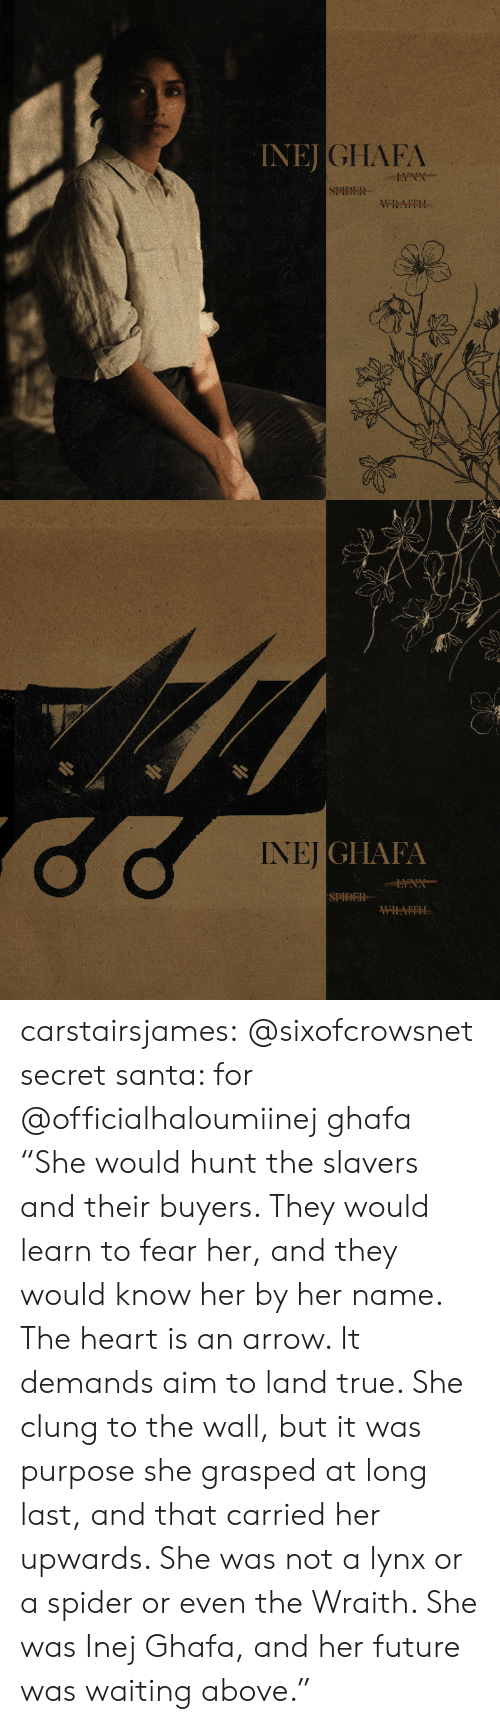 "Future, Spider, and Target: INEJ  JGHAFA  SPIDER  WRAITH   NEİGI IAIA  SPIDER carstairsjames:   @sixofcrowsnet secret santa: for @officialhaloumiinej ghafa   ""She would hunt the slavers and their buyers. They would learn to fear her, and they would know her by her name. The heart is an arrow. It demands aim to land true. She clung to the wall, but it was purpose she grasped at long last, and that carried her upwards. She was not a lynx or a spider or even the Wraith. She was Inej Ghafa, and her future was waiting above."""